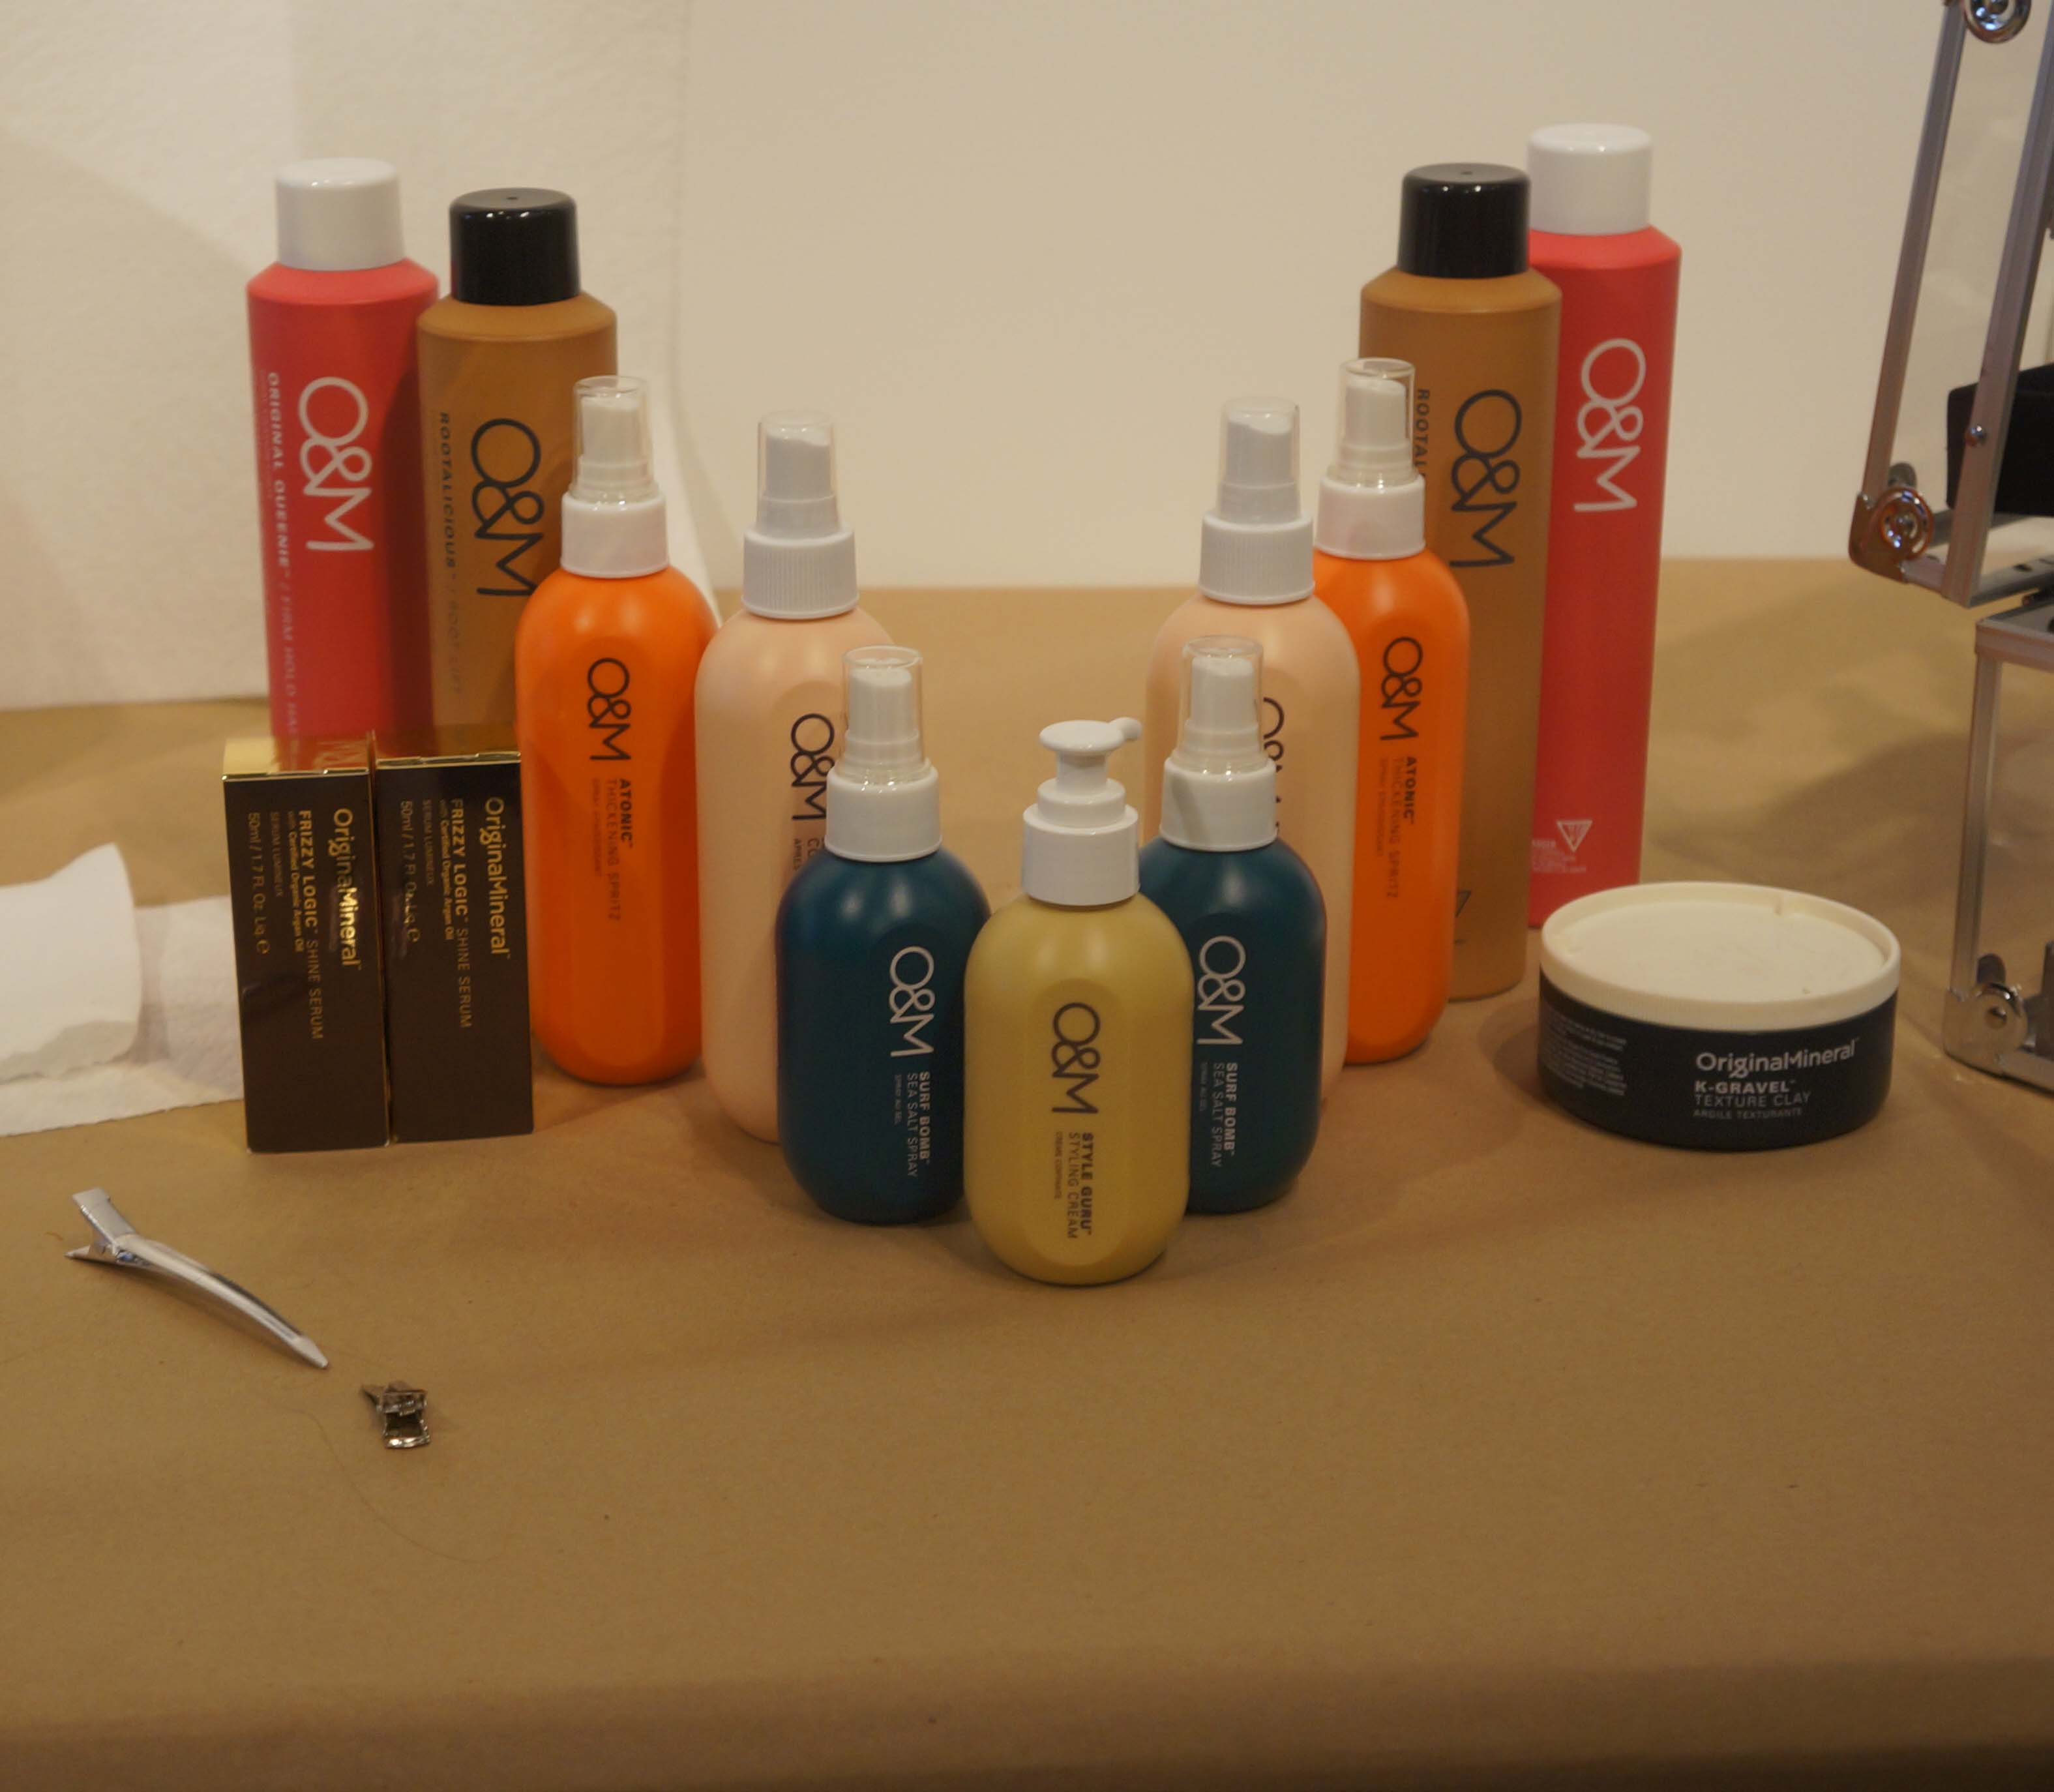 Original Mineral products used to create the hair for the show